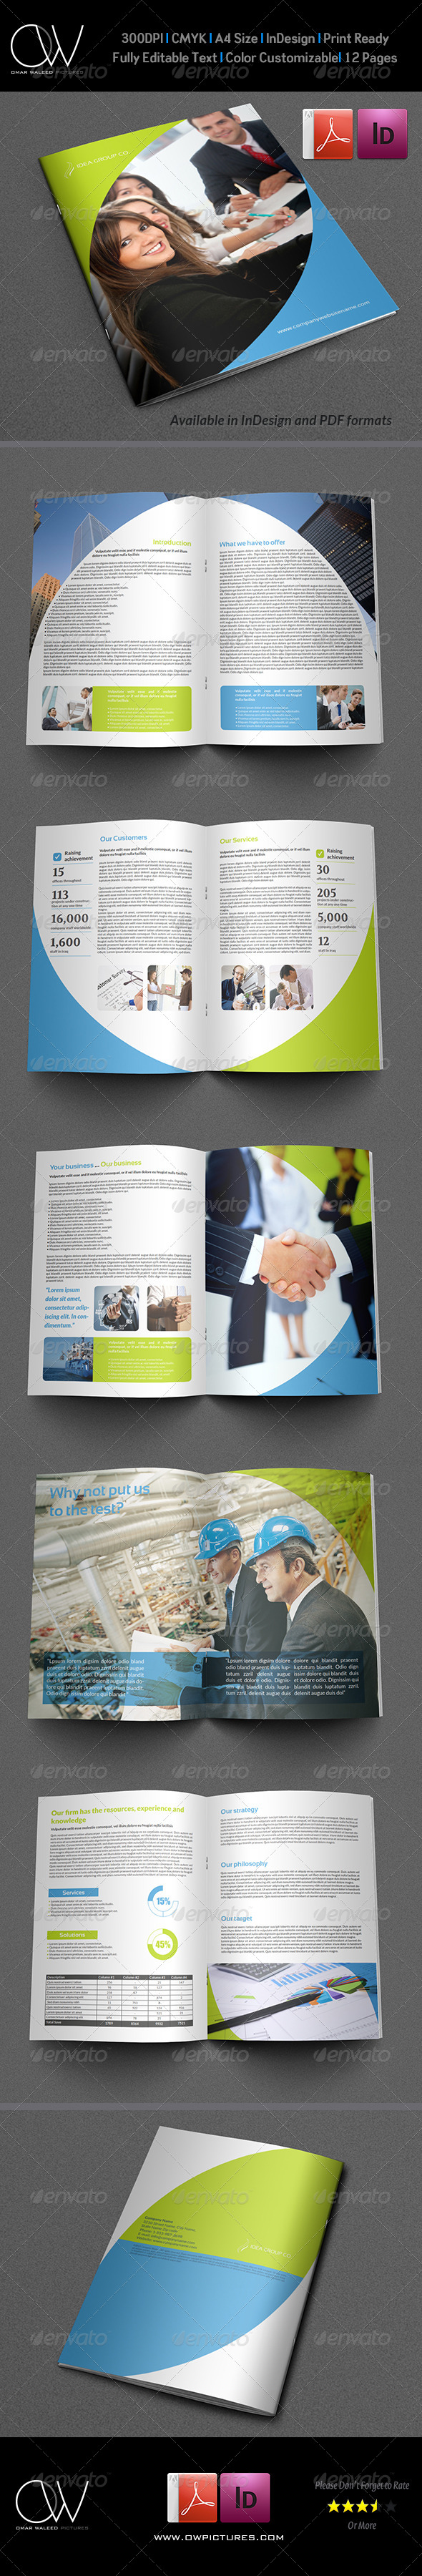 Company Brochure Template Vol.18 - 12 Pages - Corporate Brochures